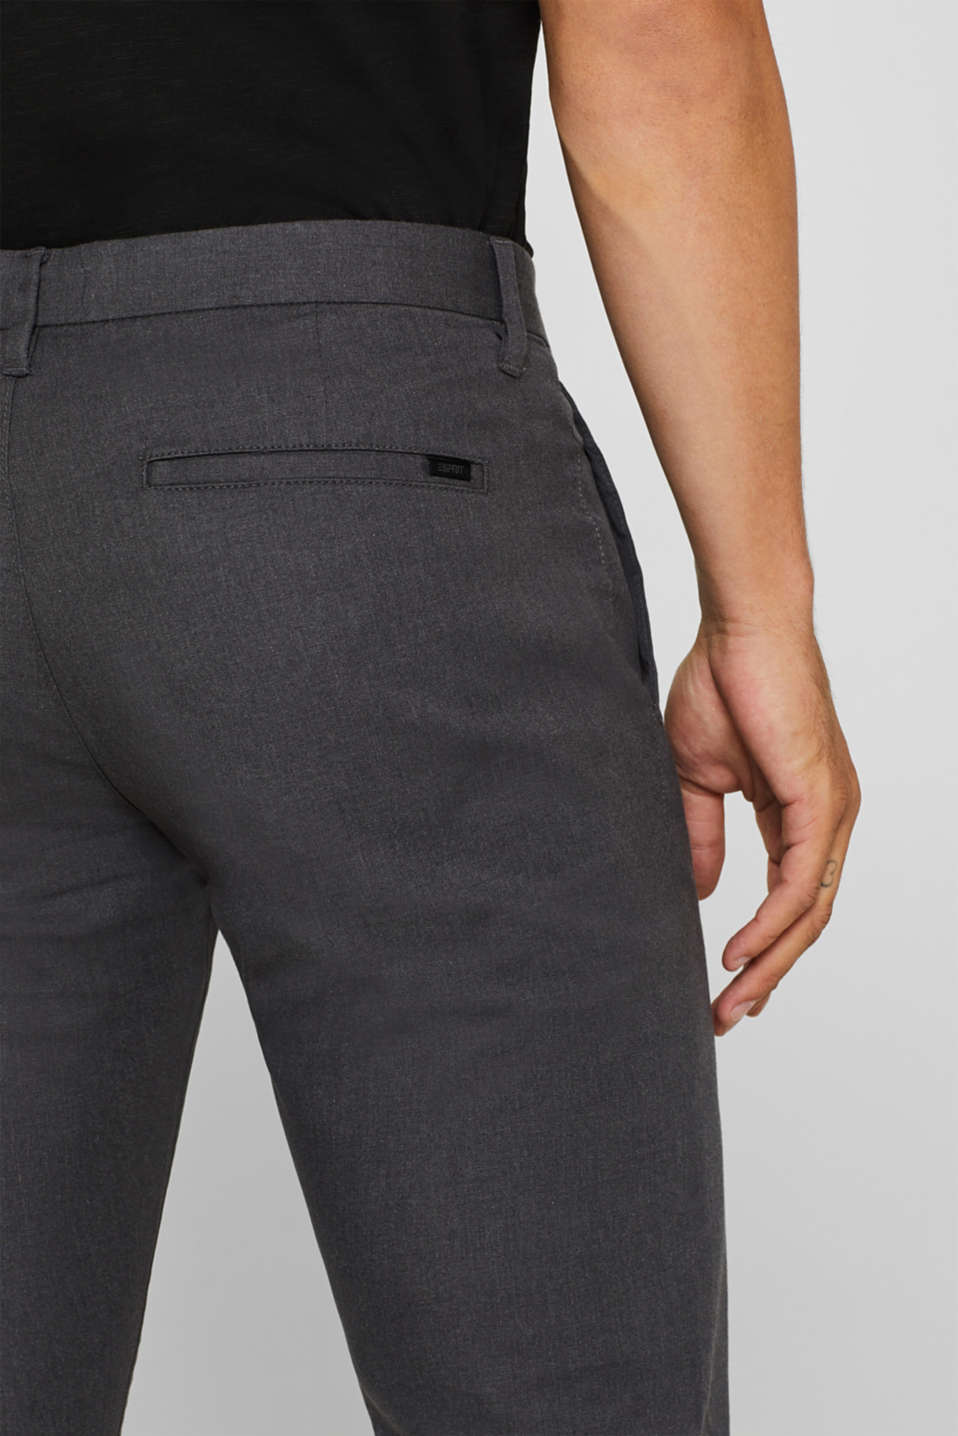 Pants woven Slim fit, ANTHRACITE, detail image number 2